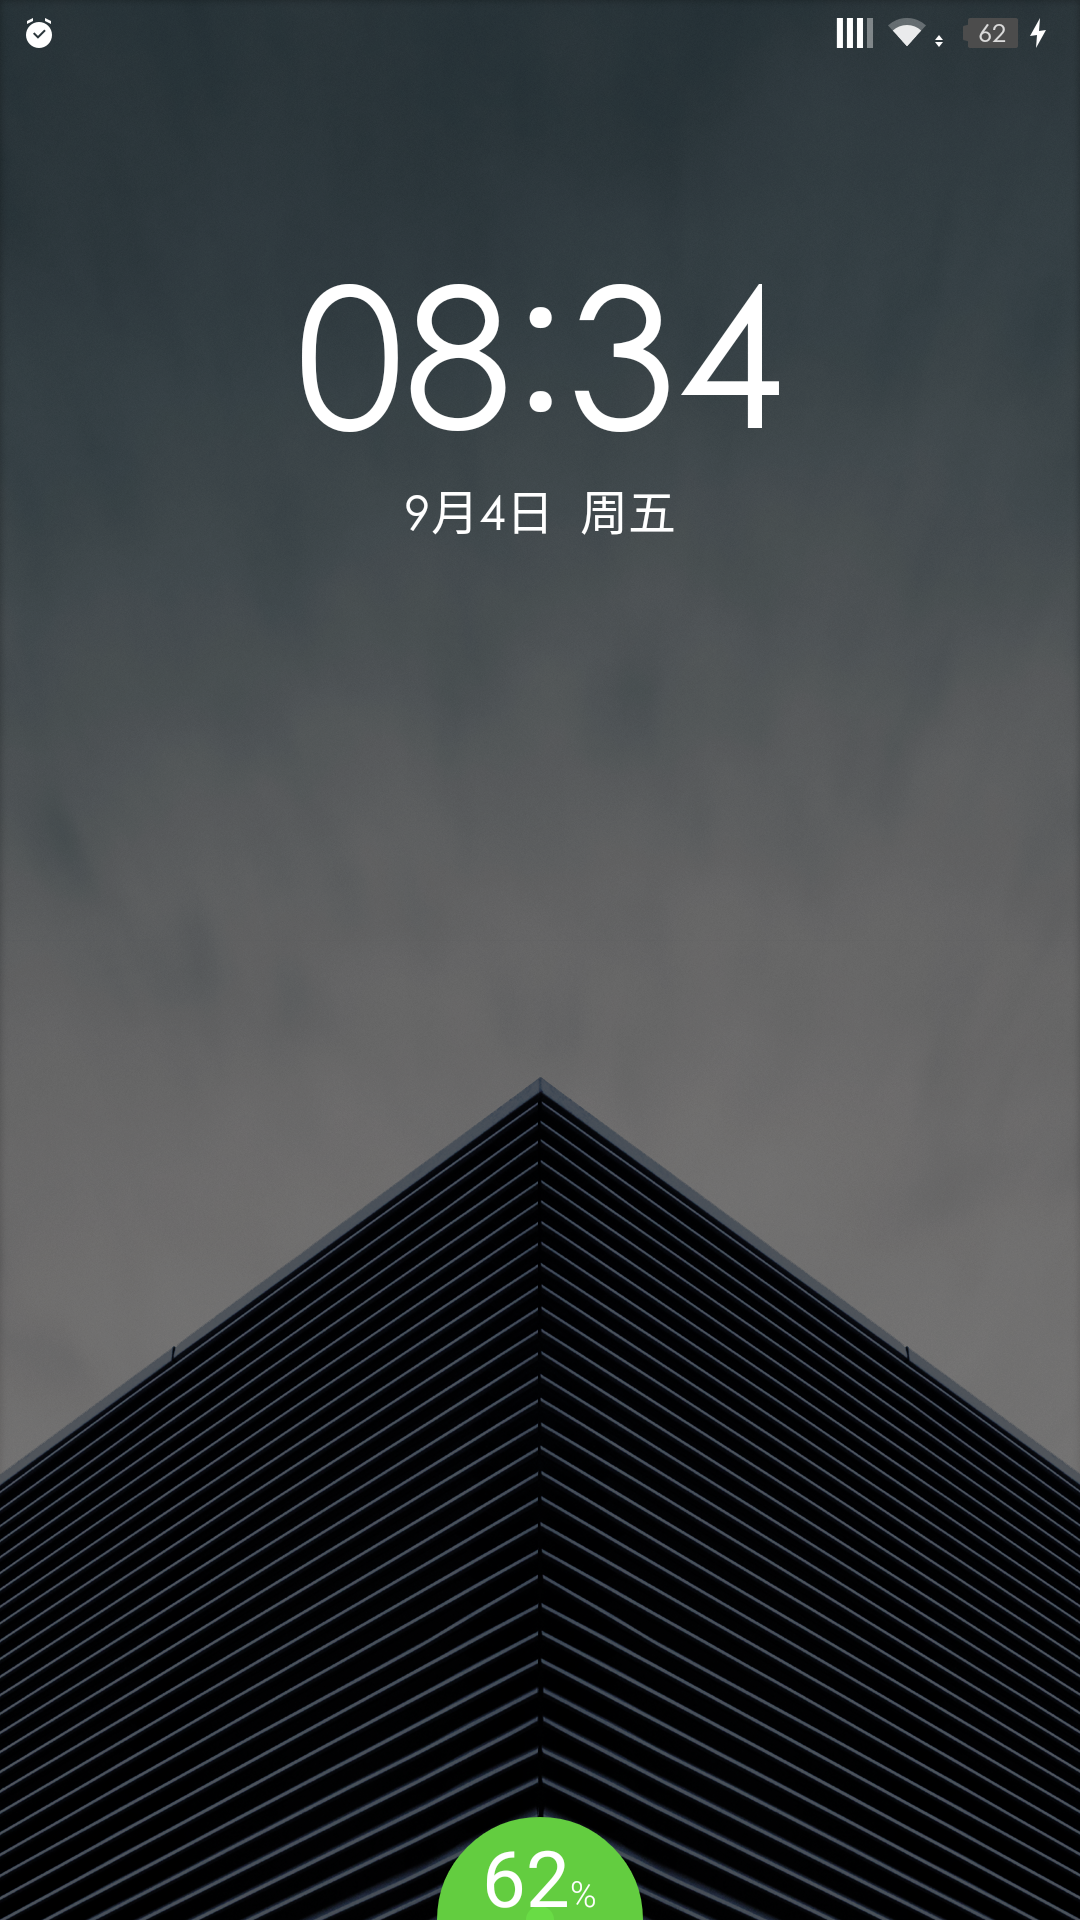 Screenshot_2015-09-04-08-34-41.png